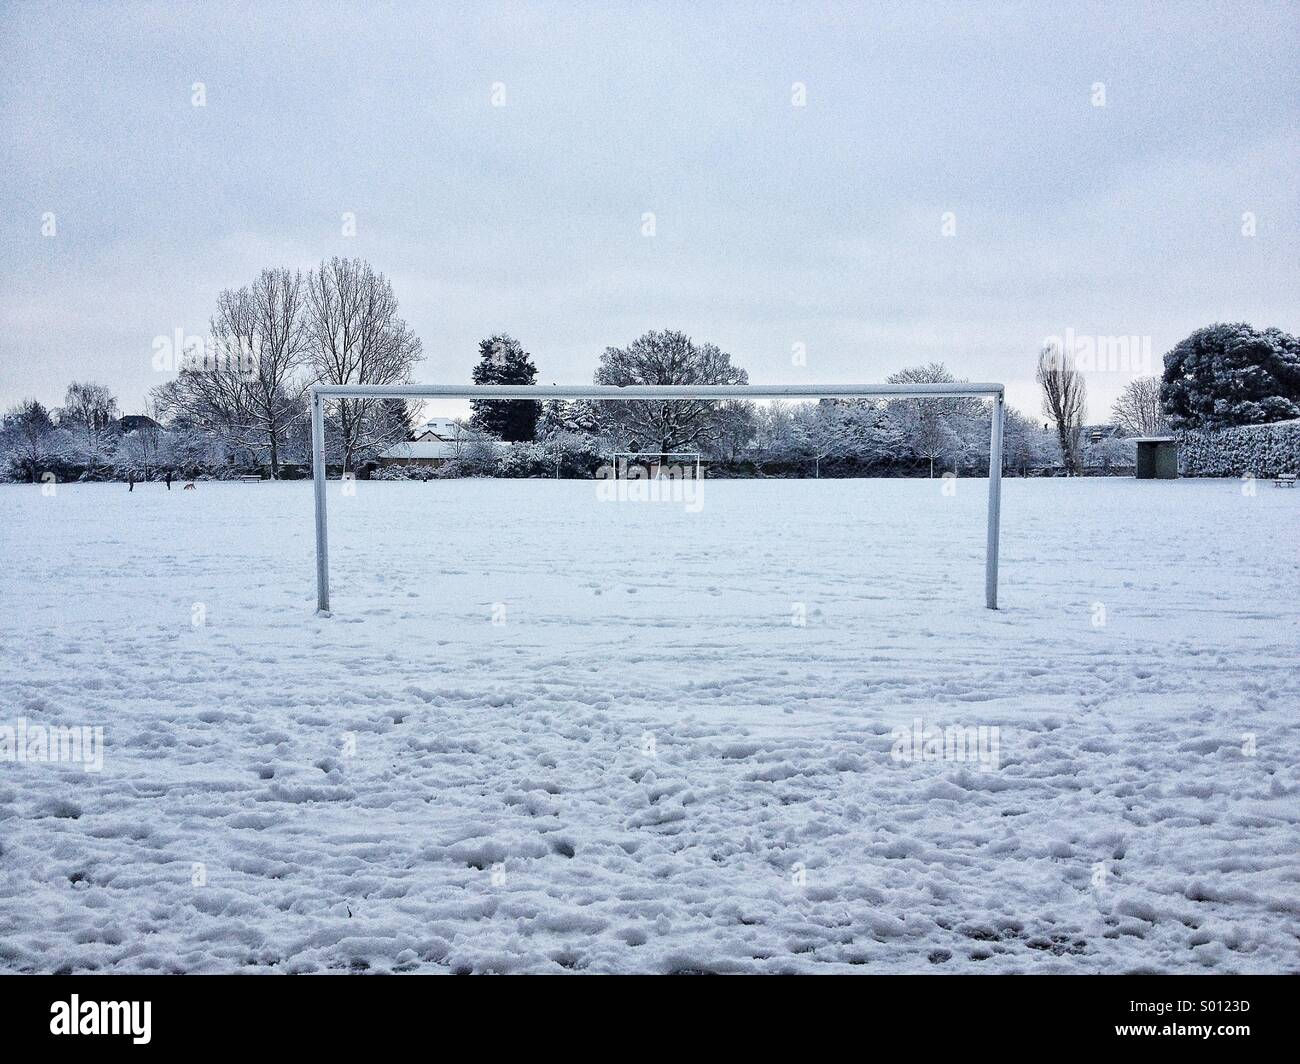 Frozen football pitch in snow, London, UK - Stock Image